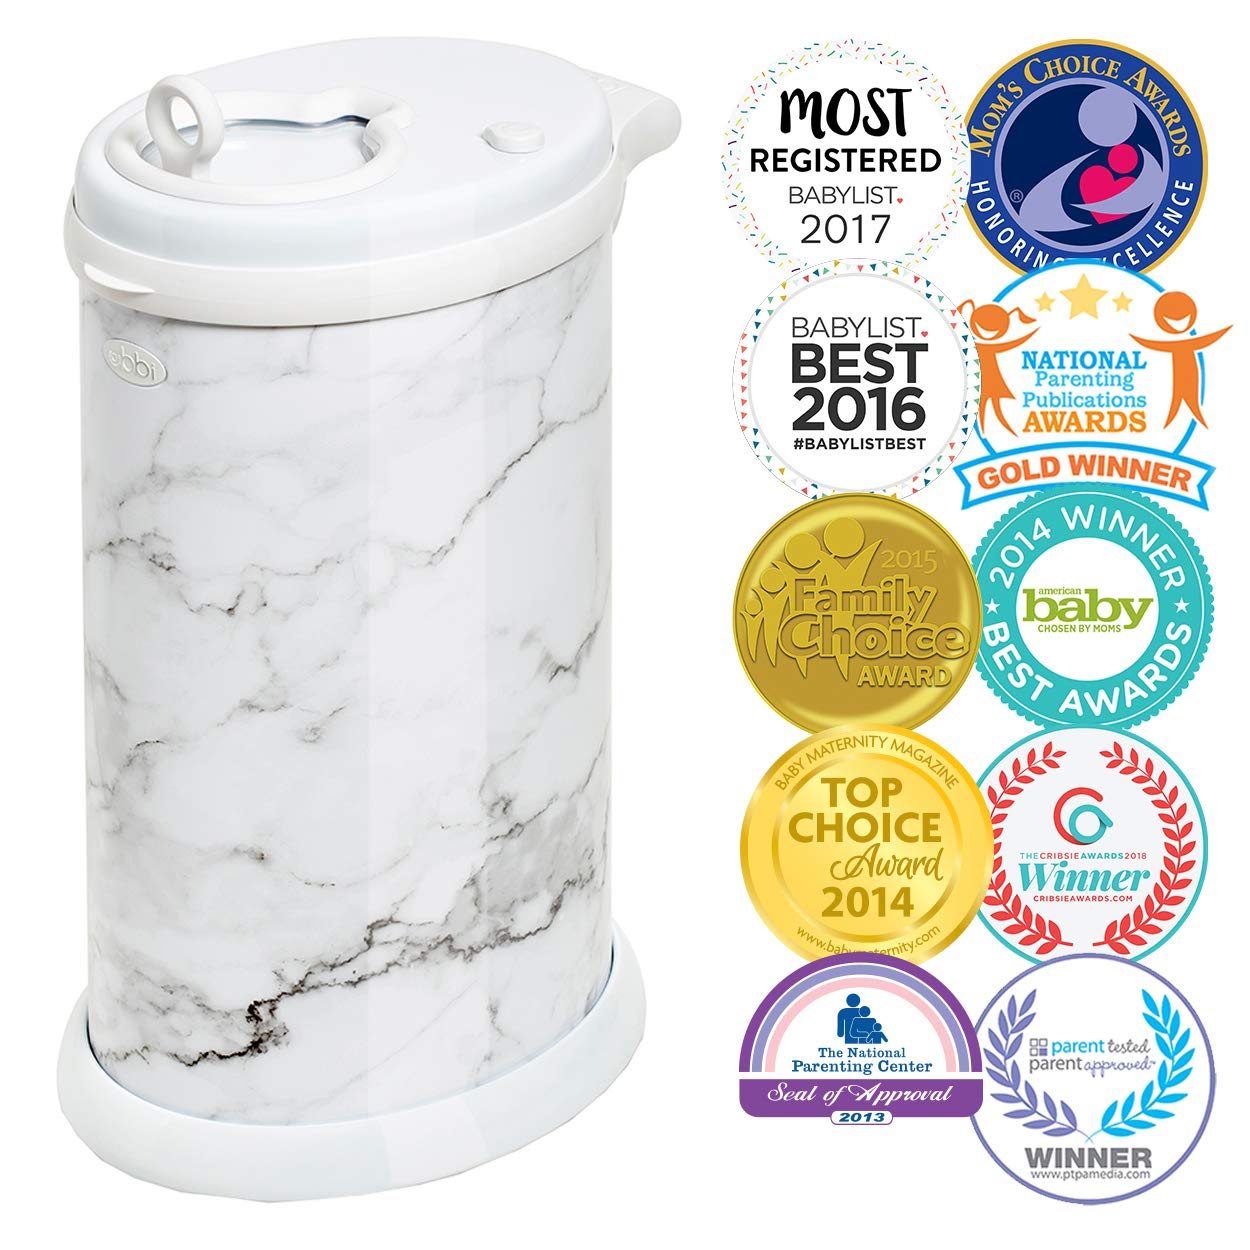 Ubbi Steel Odor Locking, No Special Bag Required Money Saving, Awards-Winning, Modern Design Registry Must-Have Diaper Pail, Marble by Ubbi (Image #1)